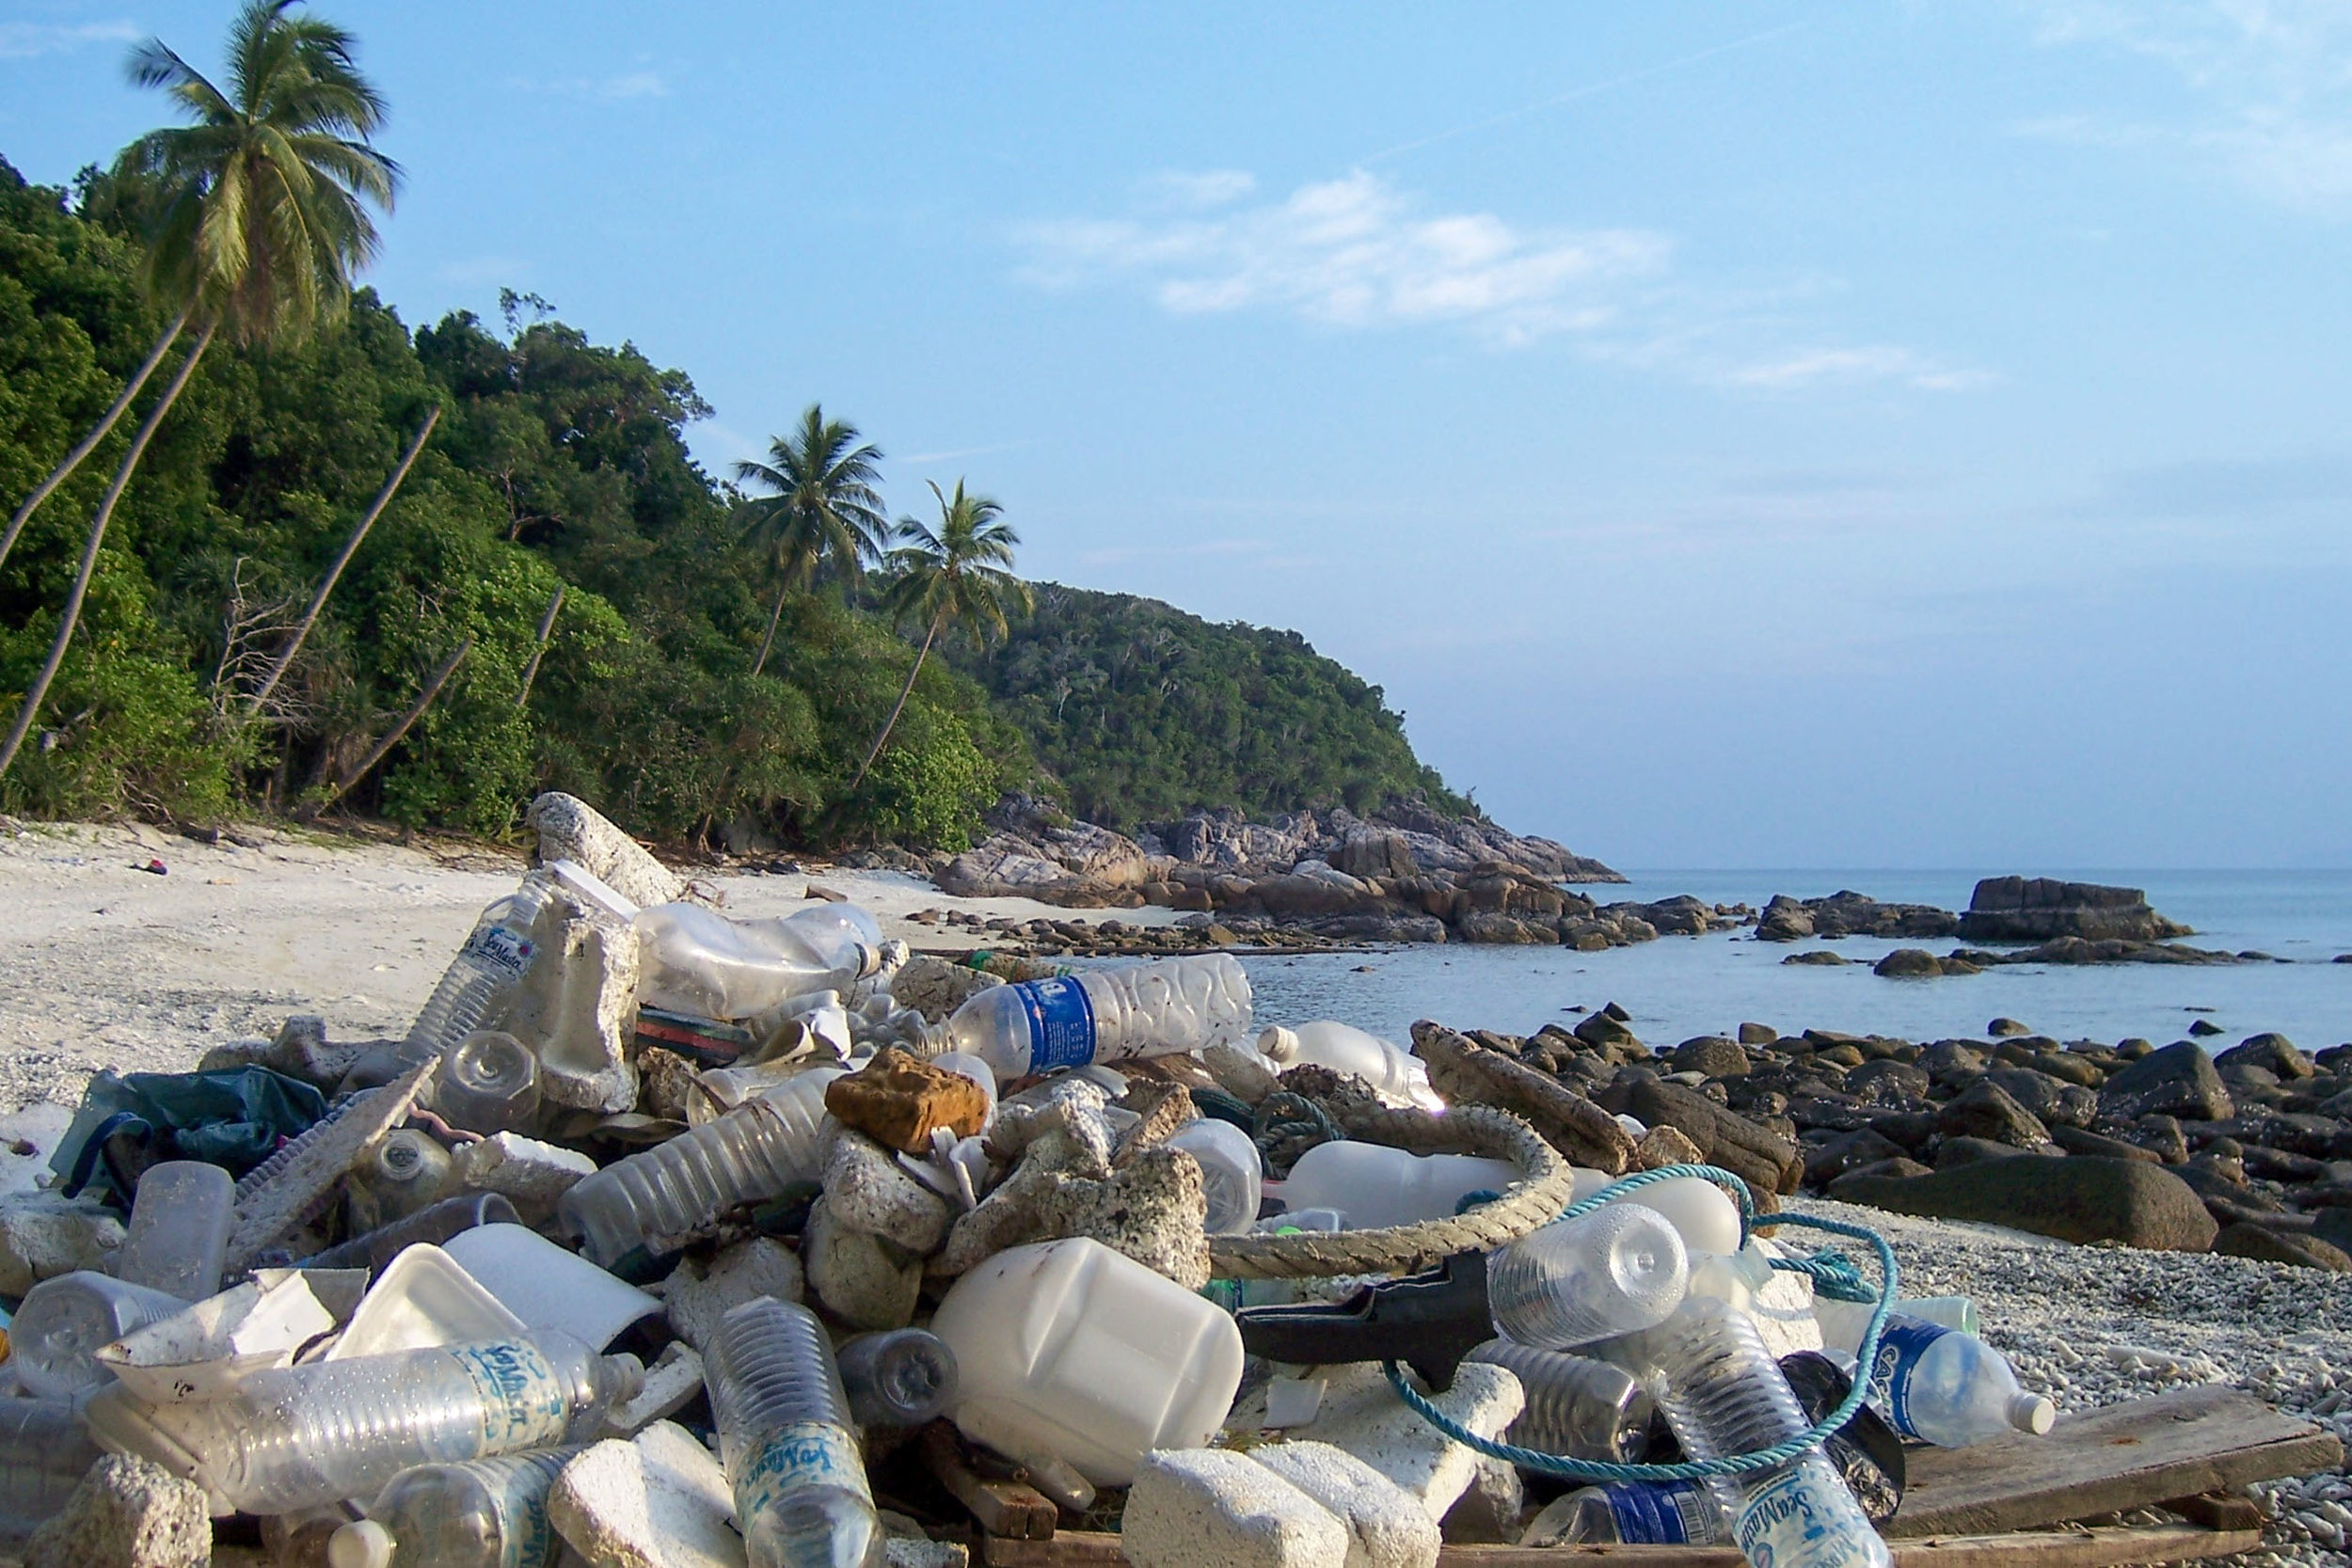 Bali and Gili Islands: Paradise Tainted by Trash